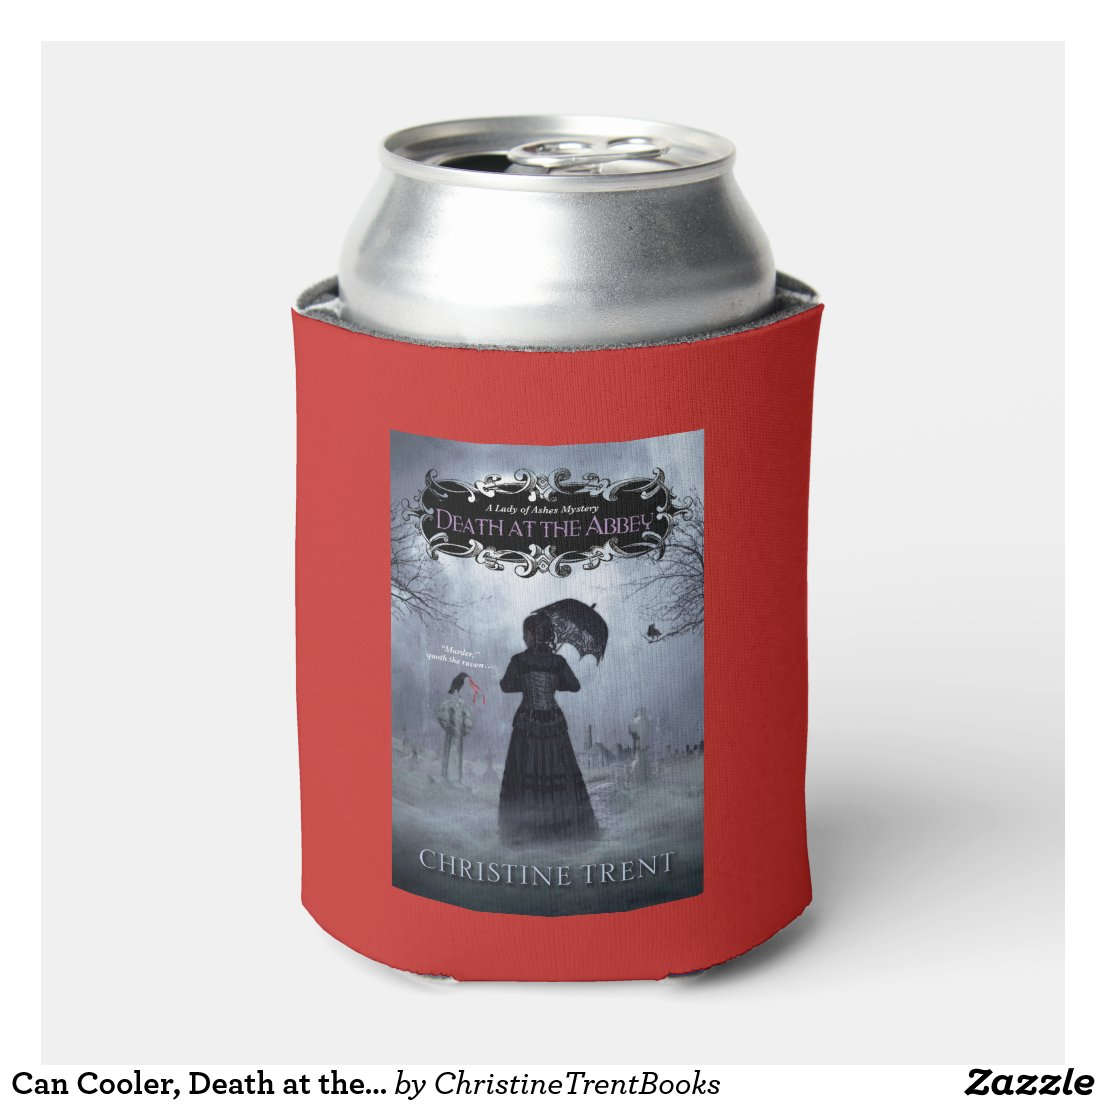 Can Cooler, Death at the Abbey Can Cooler